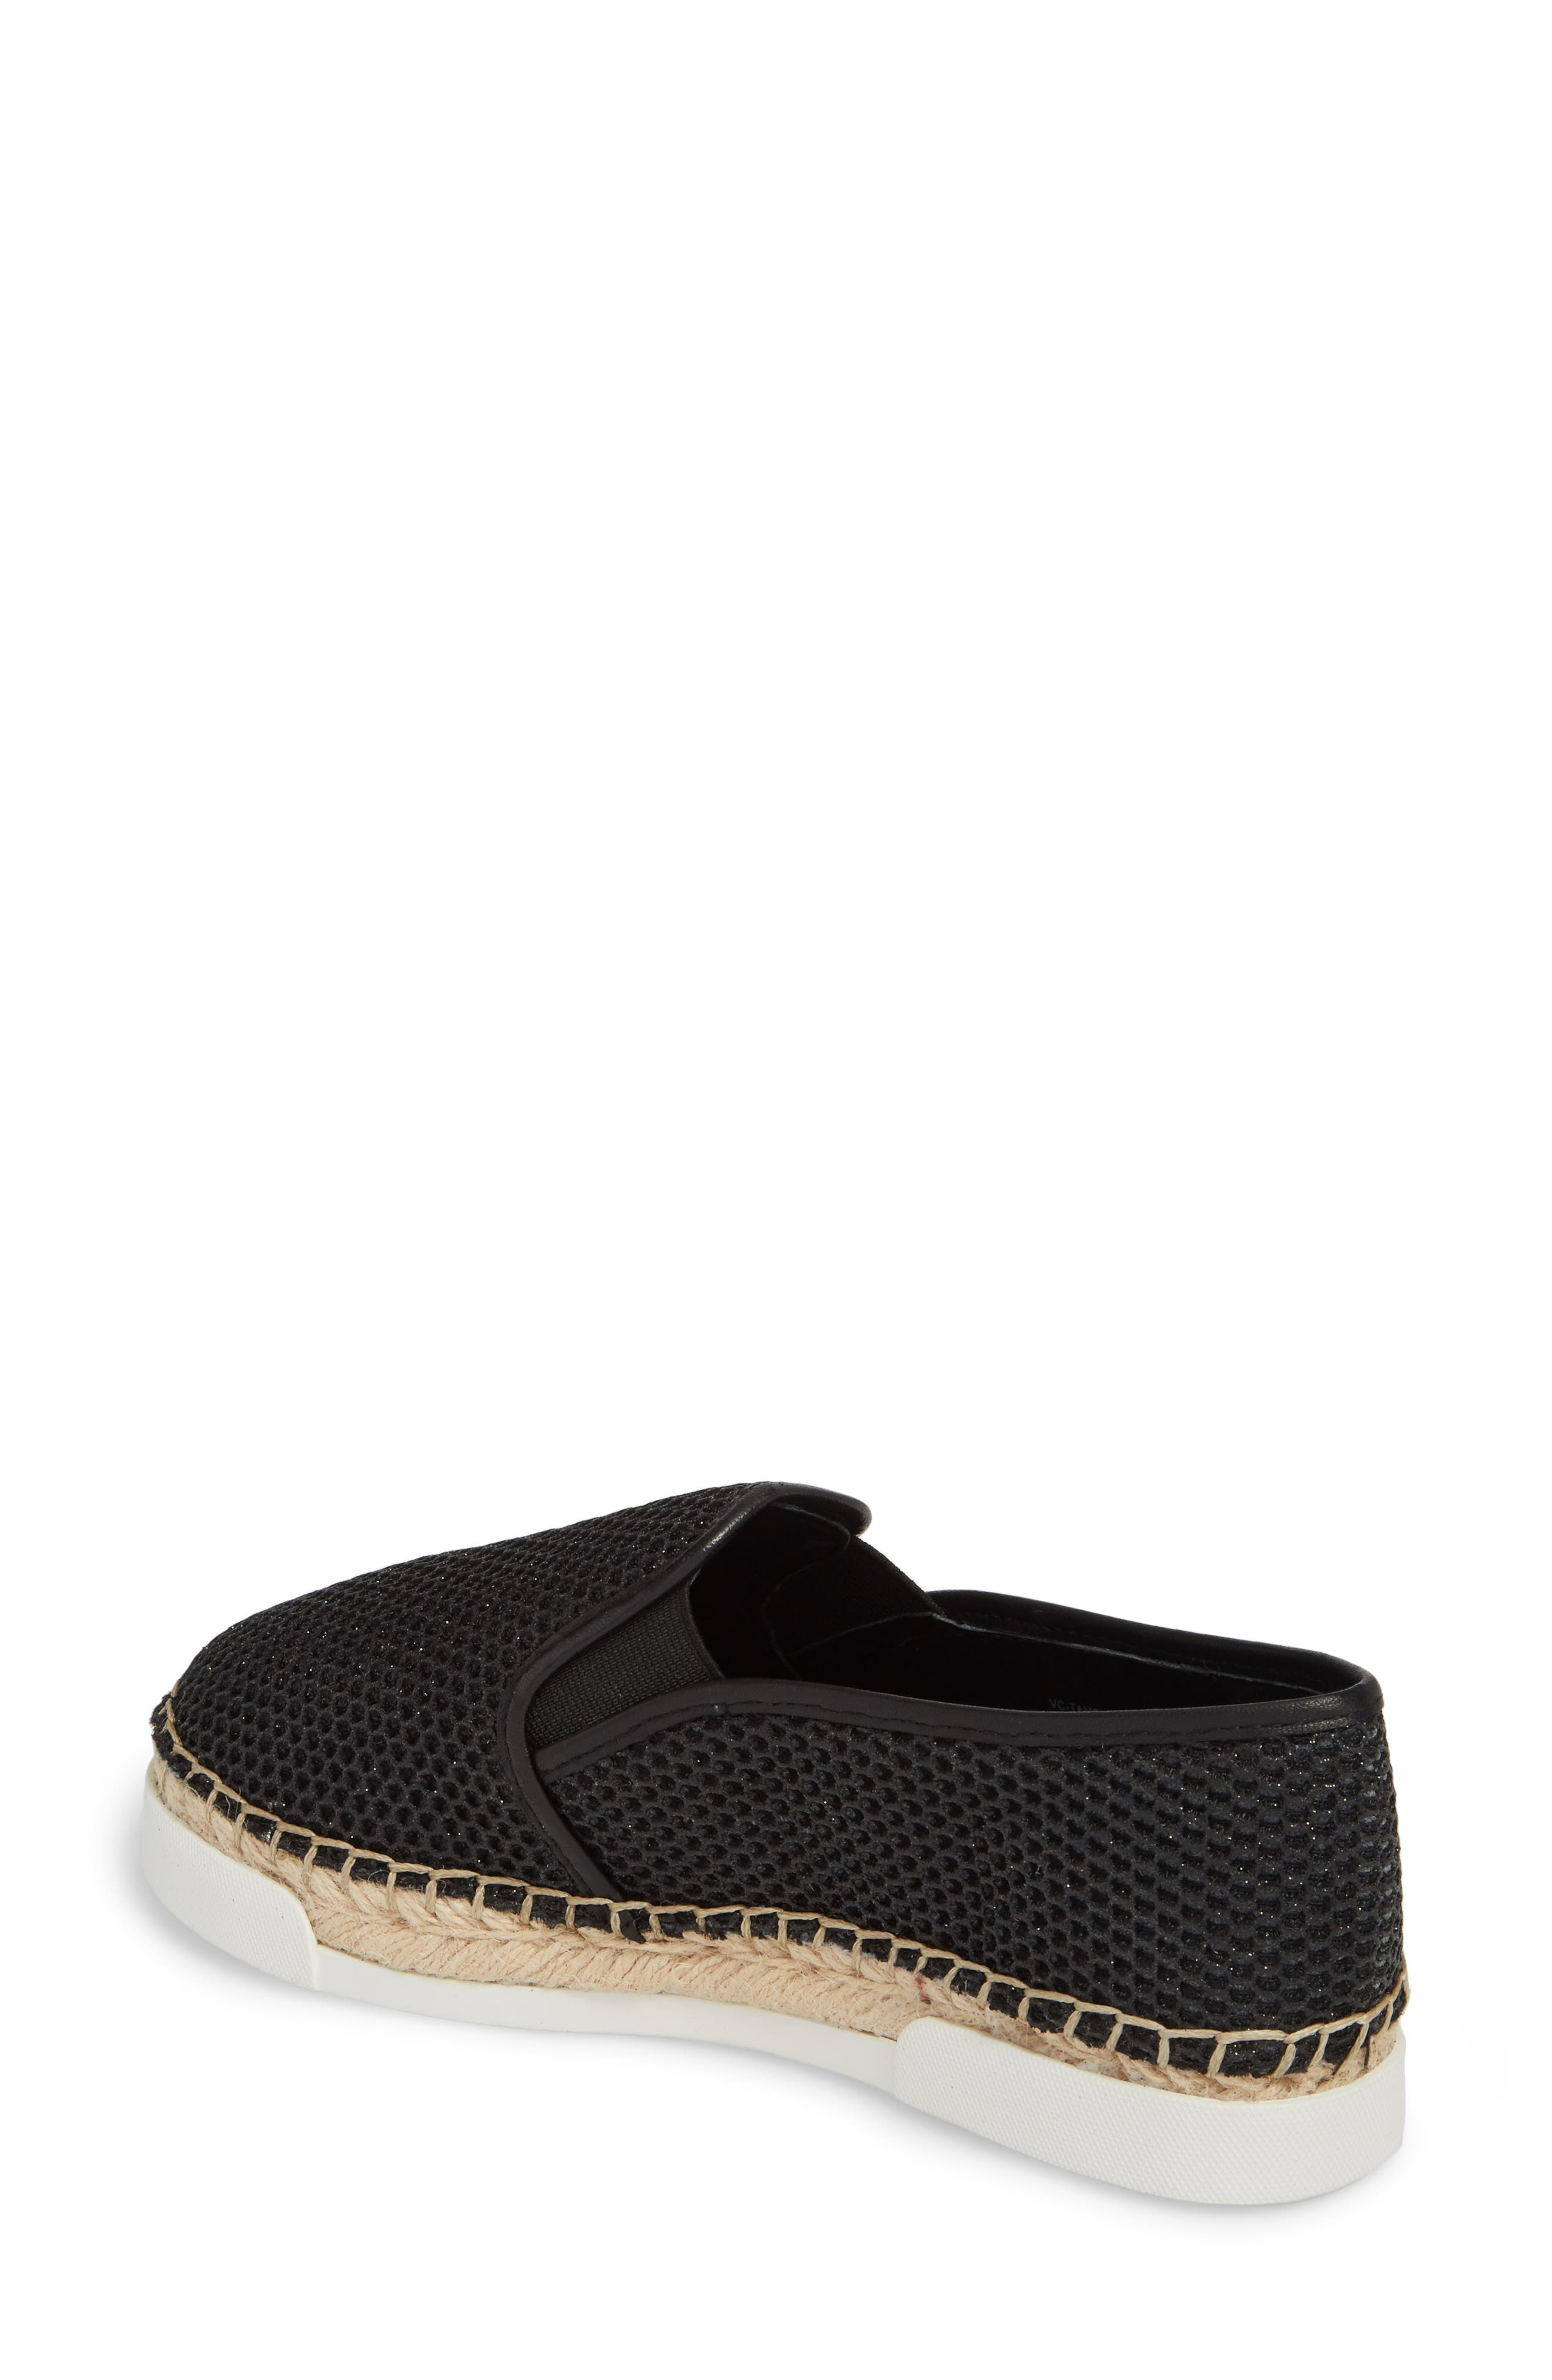 VINCE CAMUTO, Tambie Slip-On Sneaker, Alternate thumbnail 2, color, 001